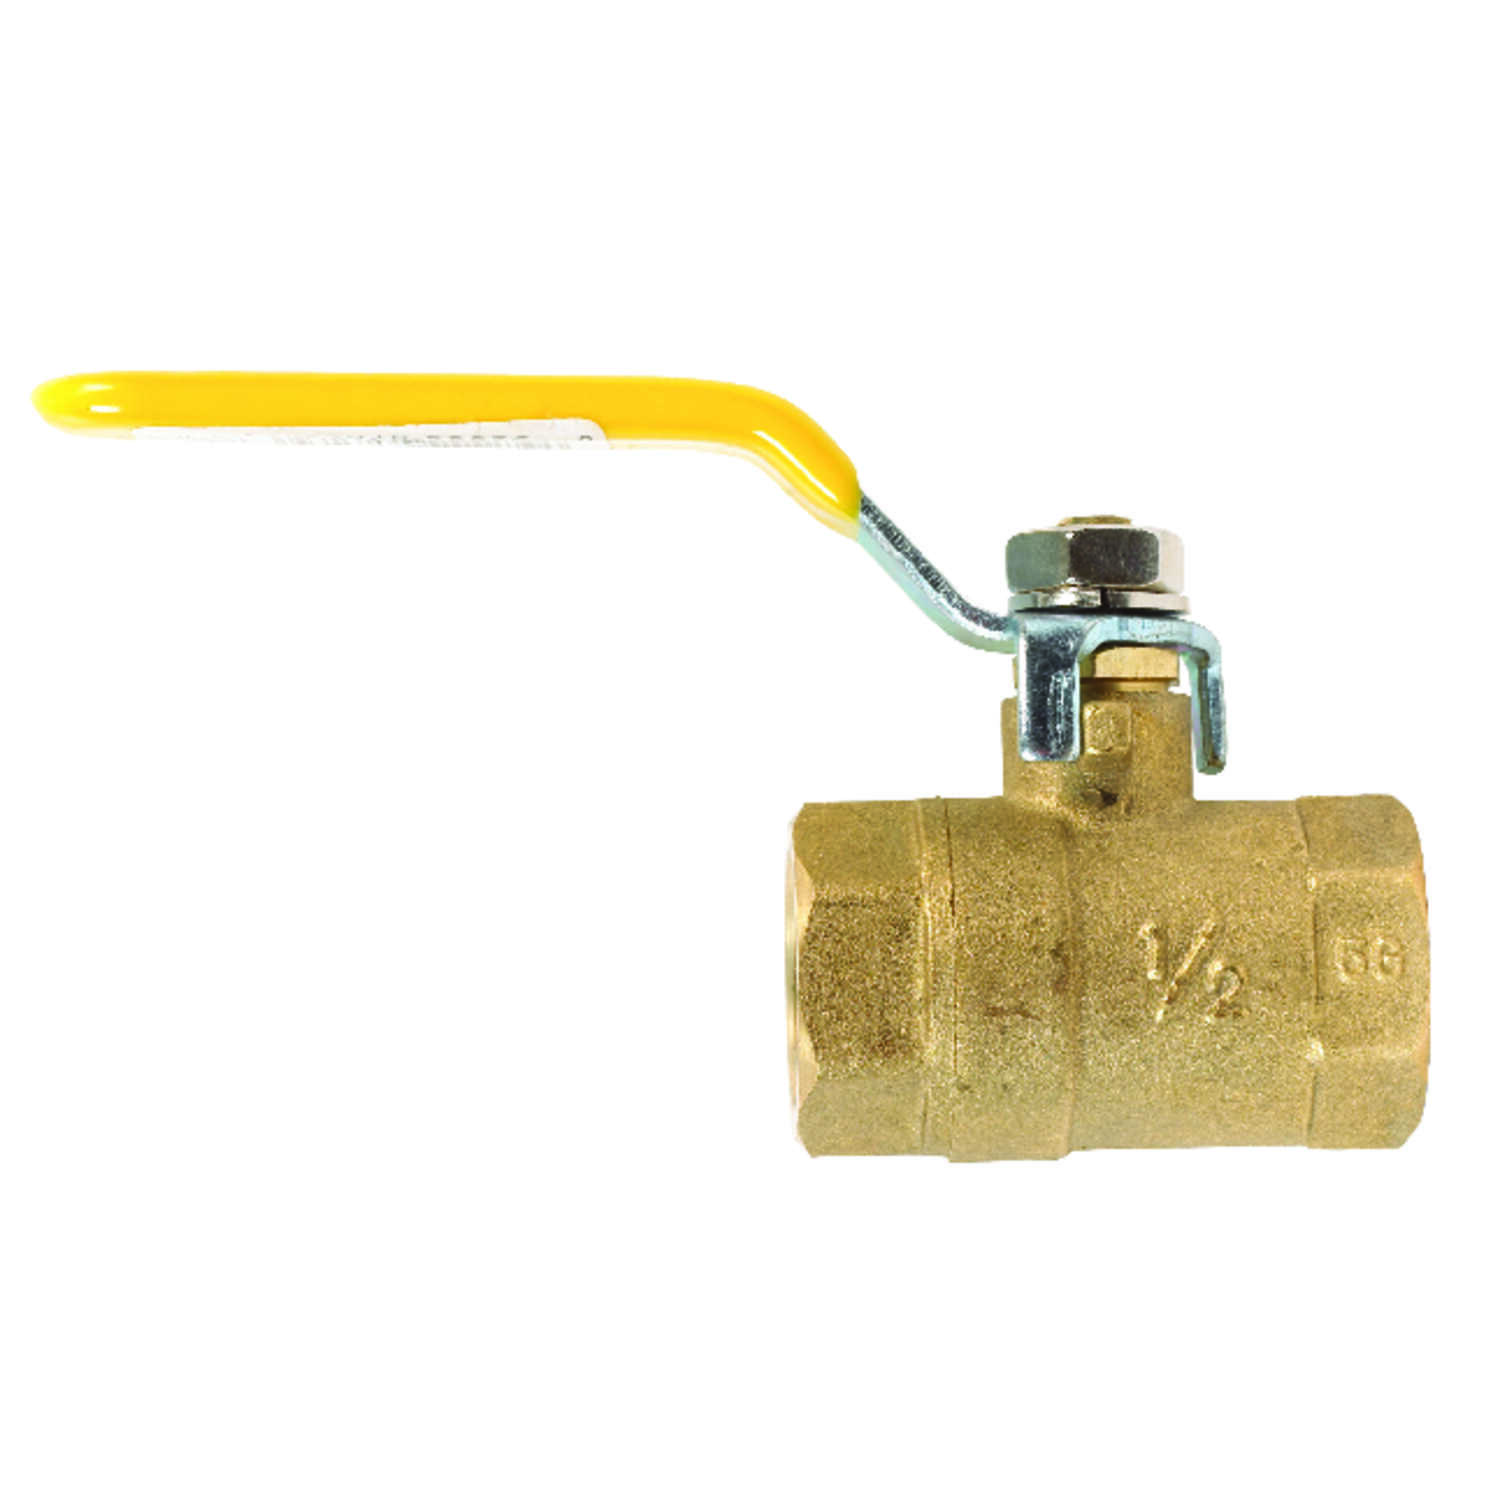 Mueller  Ball Valve  1/2 in. FPT   x 1/2 in. Dia. FPT  Brass  Packing Gland